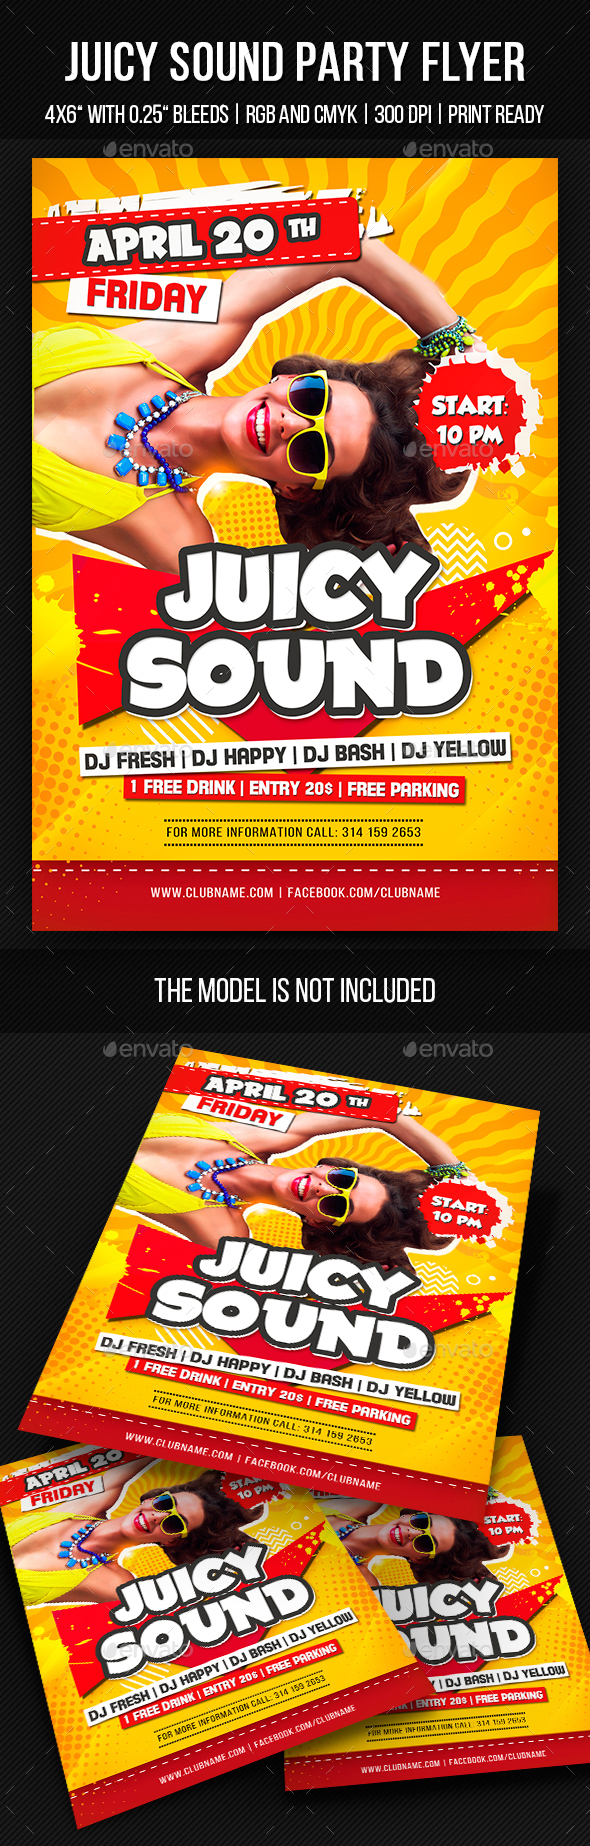 Juicy Sound Party Flyer - Clubs & Parties Events